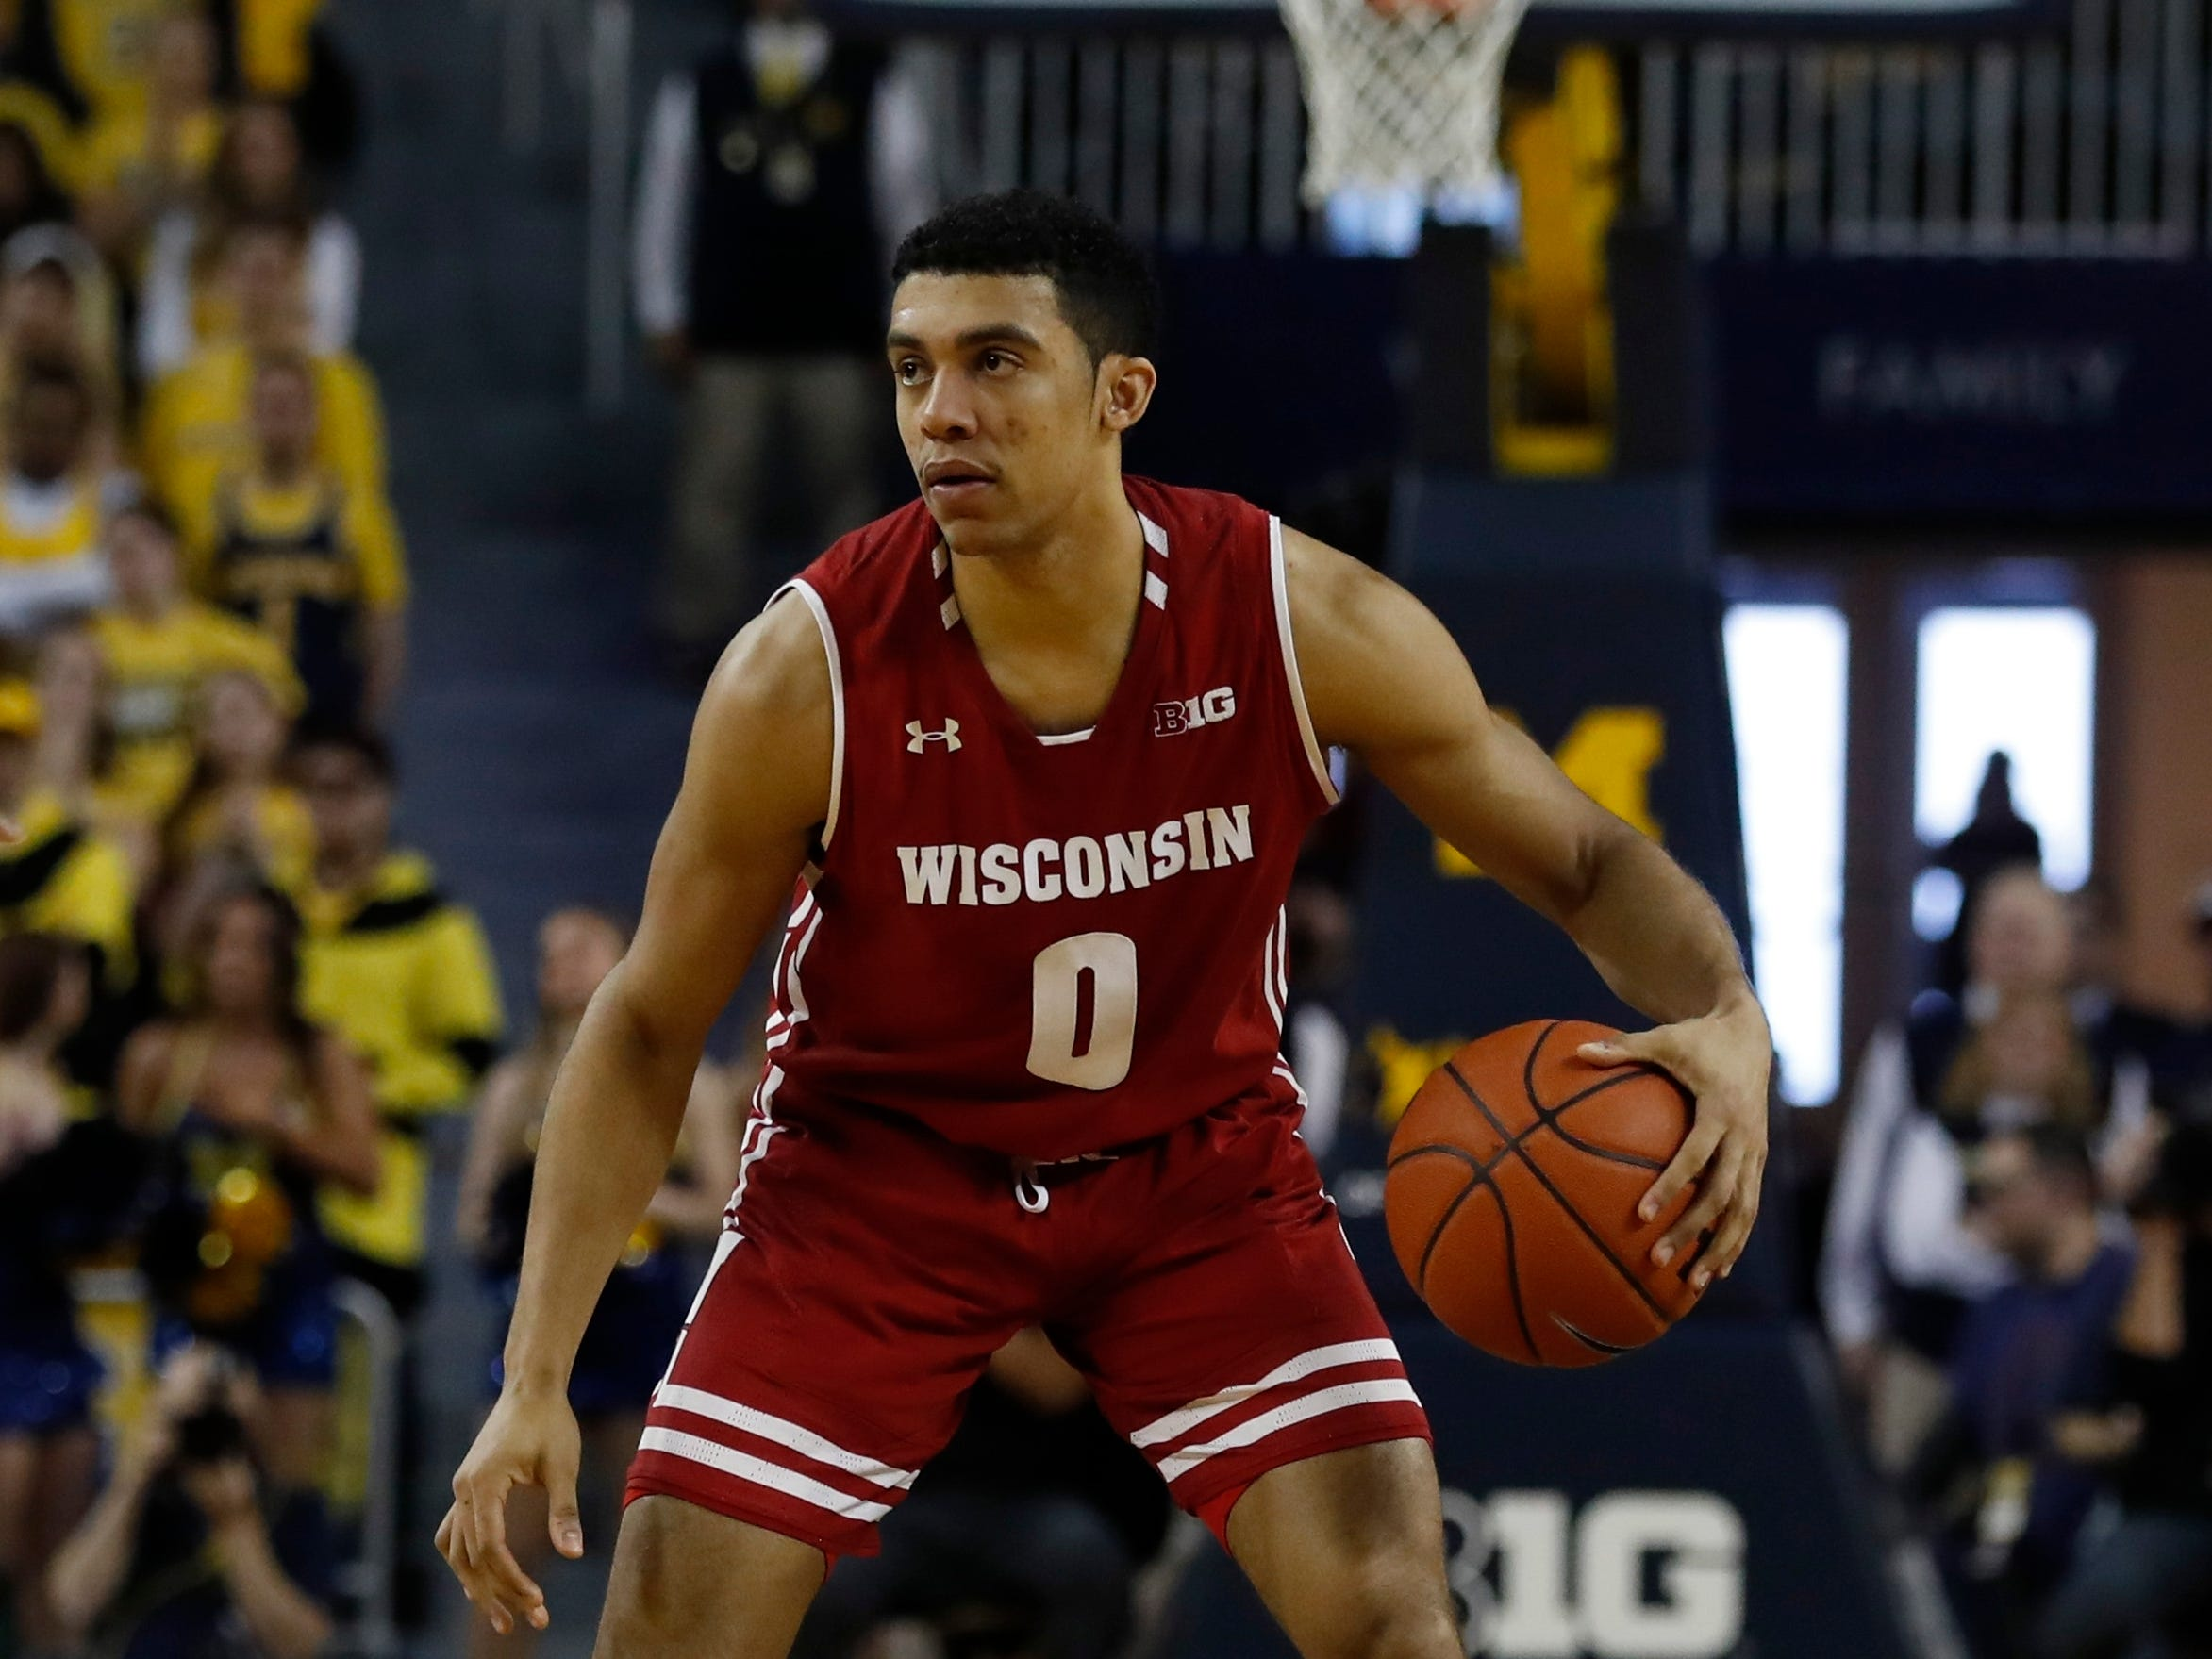 Wisconsin guard D'Mitrik Trice looks for an open man on Saturday.